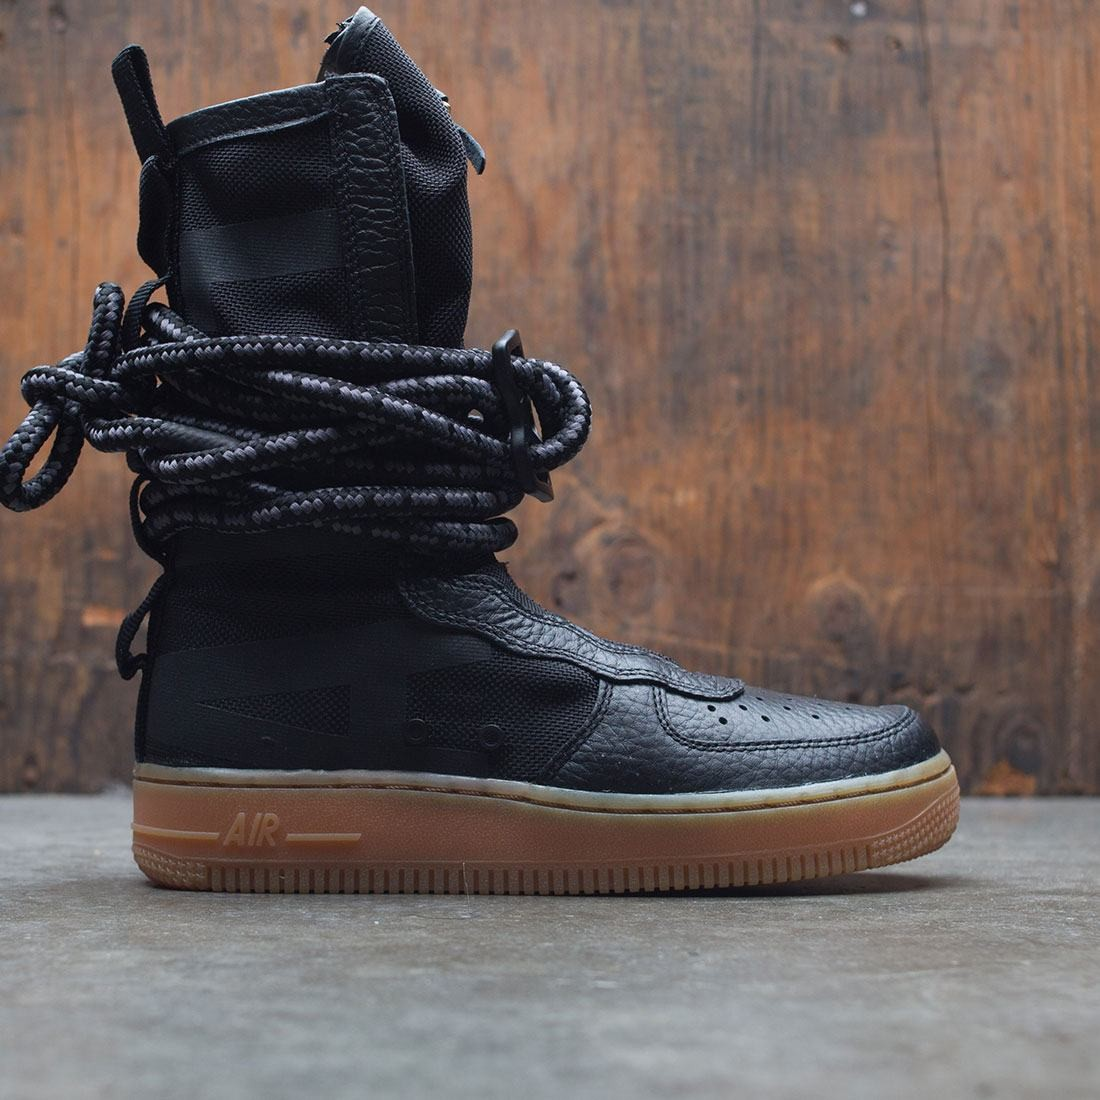 nike women sf air force 1 hi boot black black gum light brow